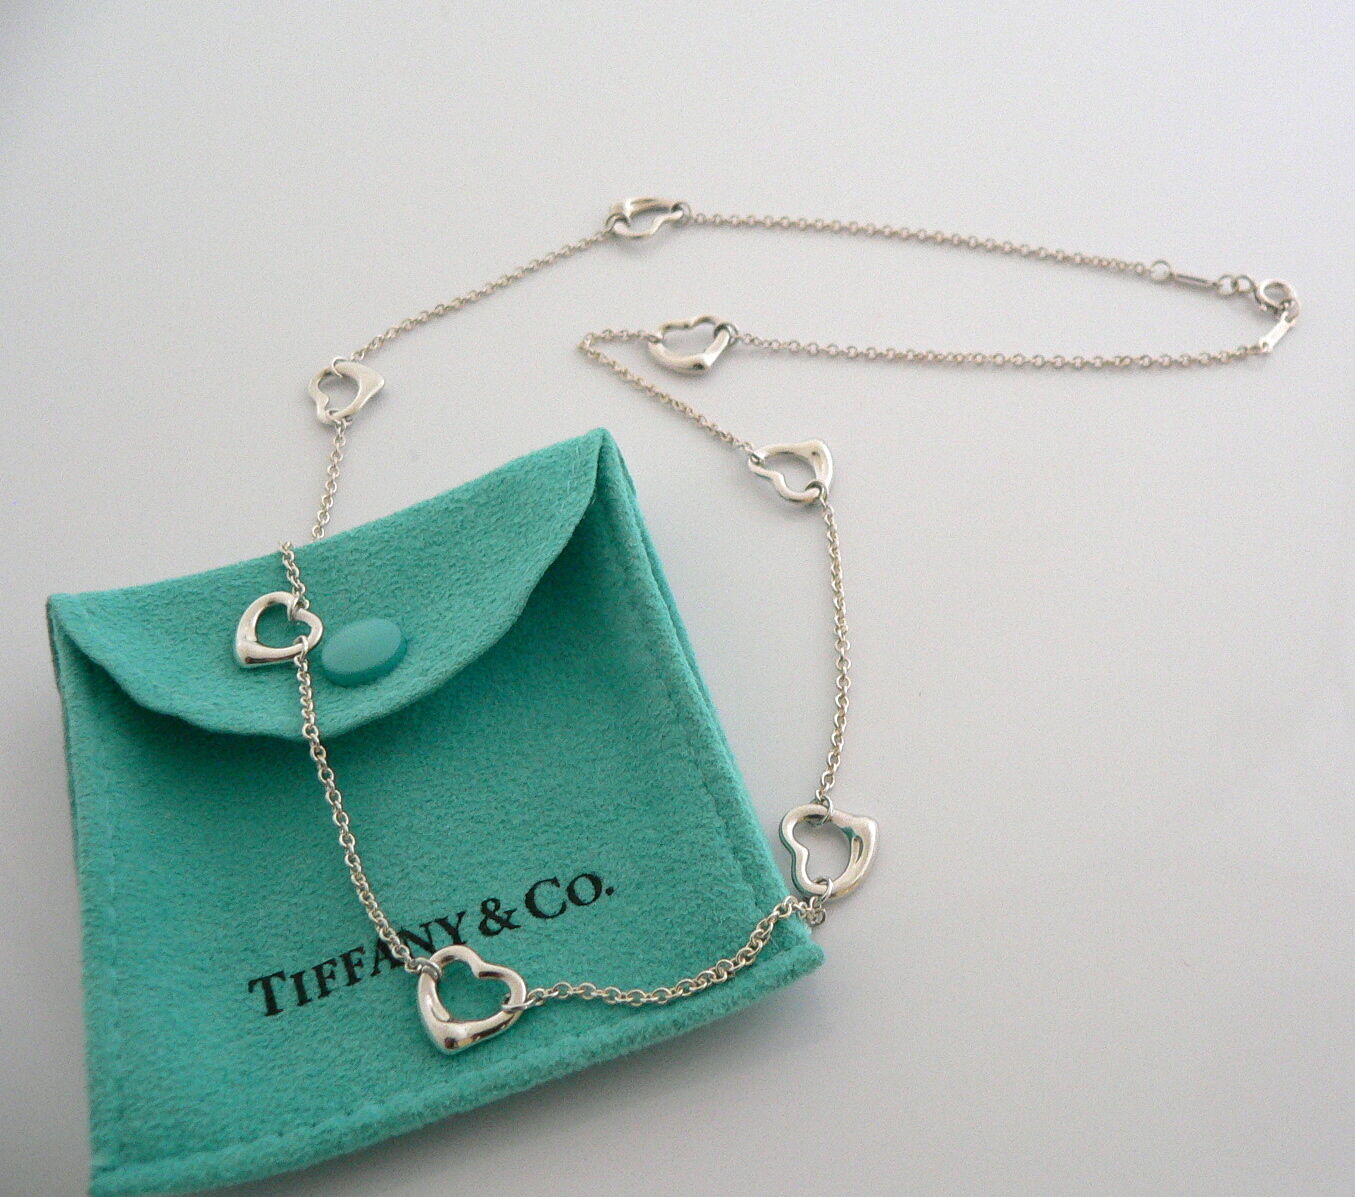 Tiffany & Co Silver Peretti 7 Open Heart Necklace Pendant Charm Chain Gift Pouch